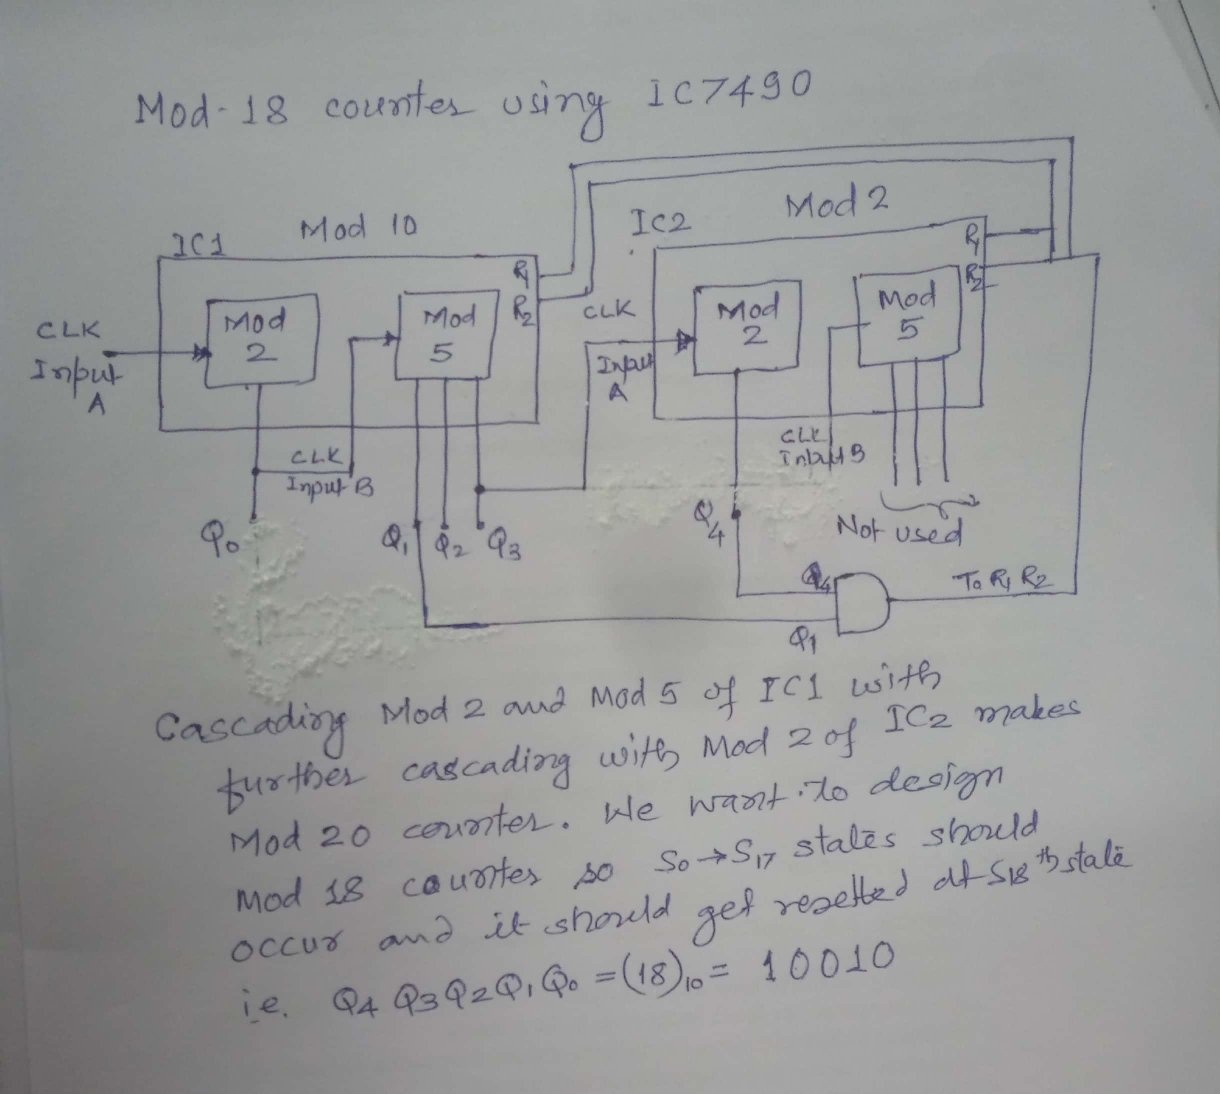 hight resolution of so by anding q4 and q1 and connecting to r1 and r2 of both ic it will work as mod 18 counter see the logic diagram below